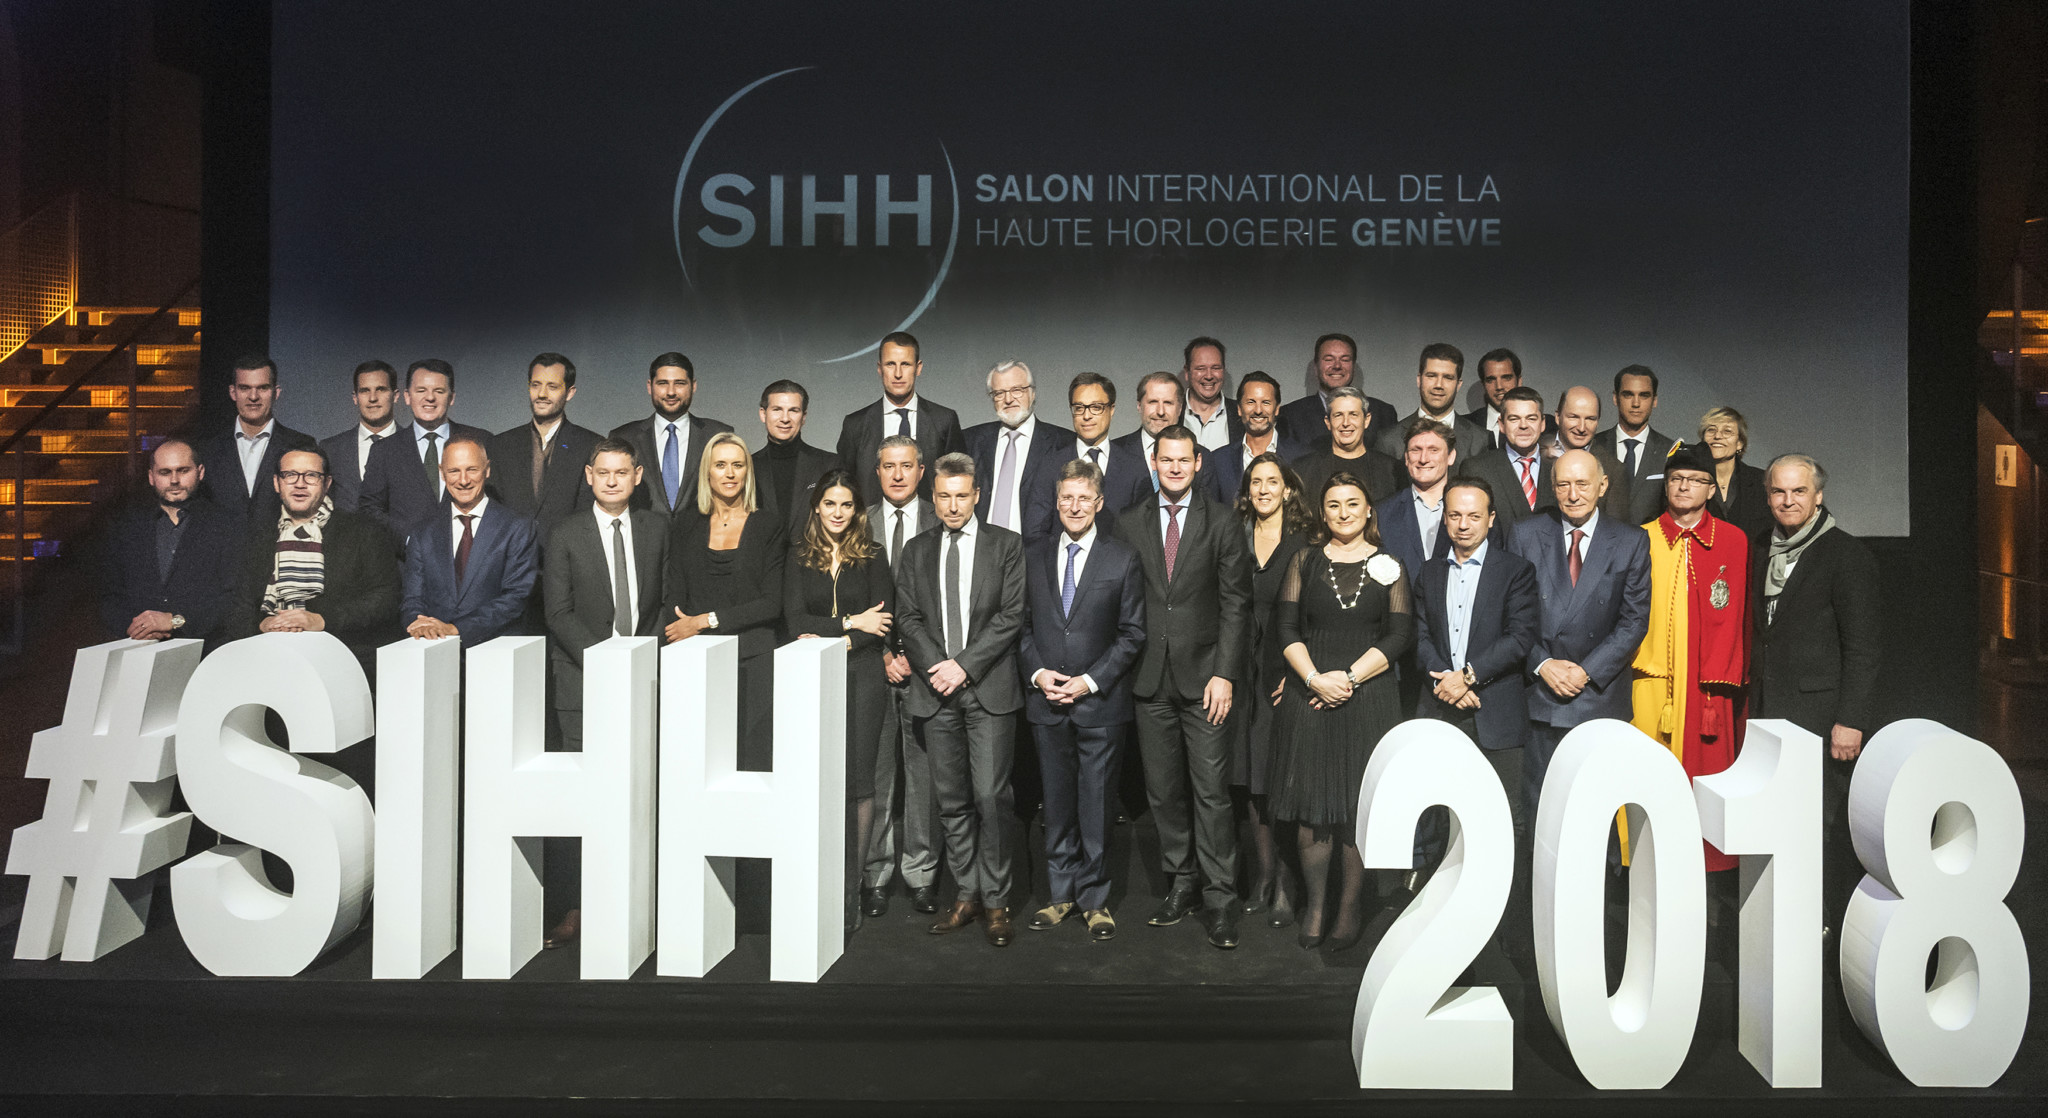 SIHH 2018 party